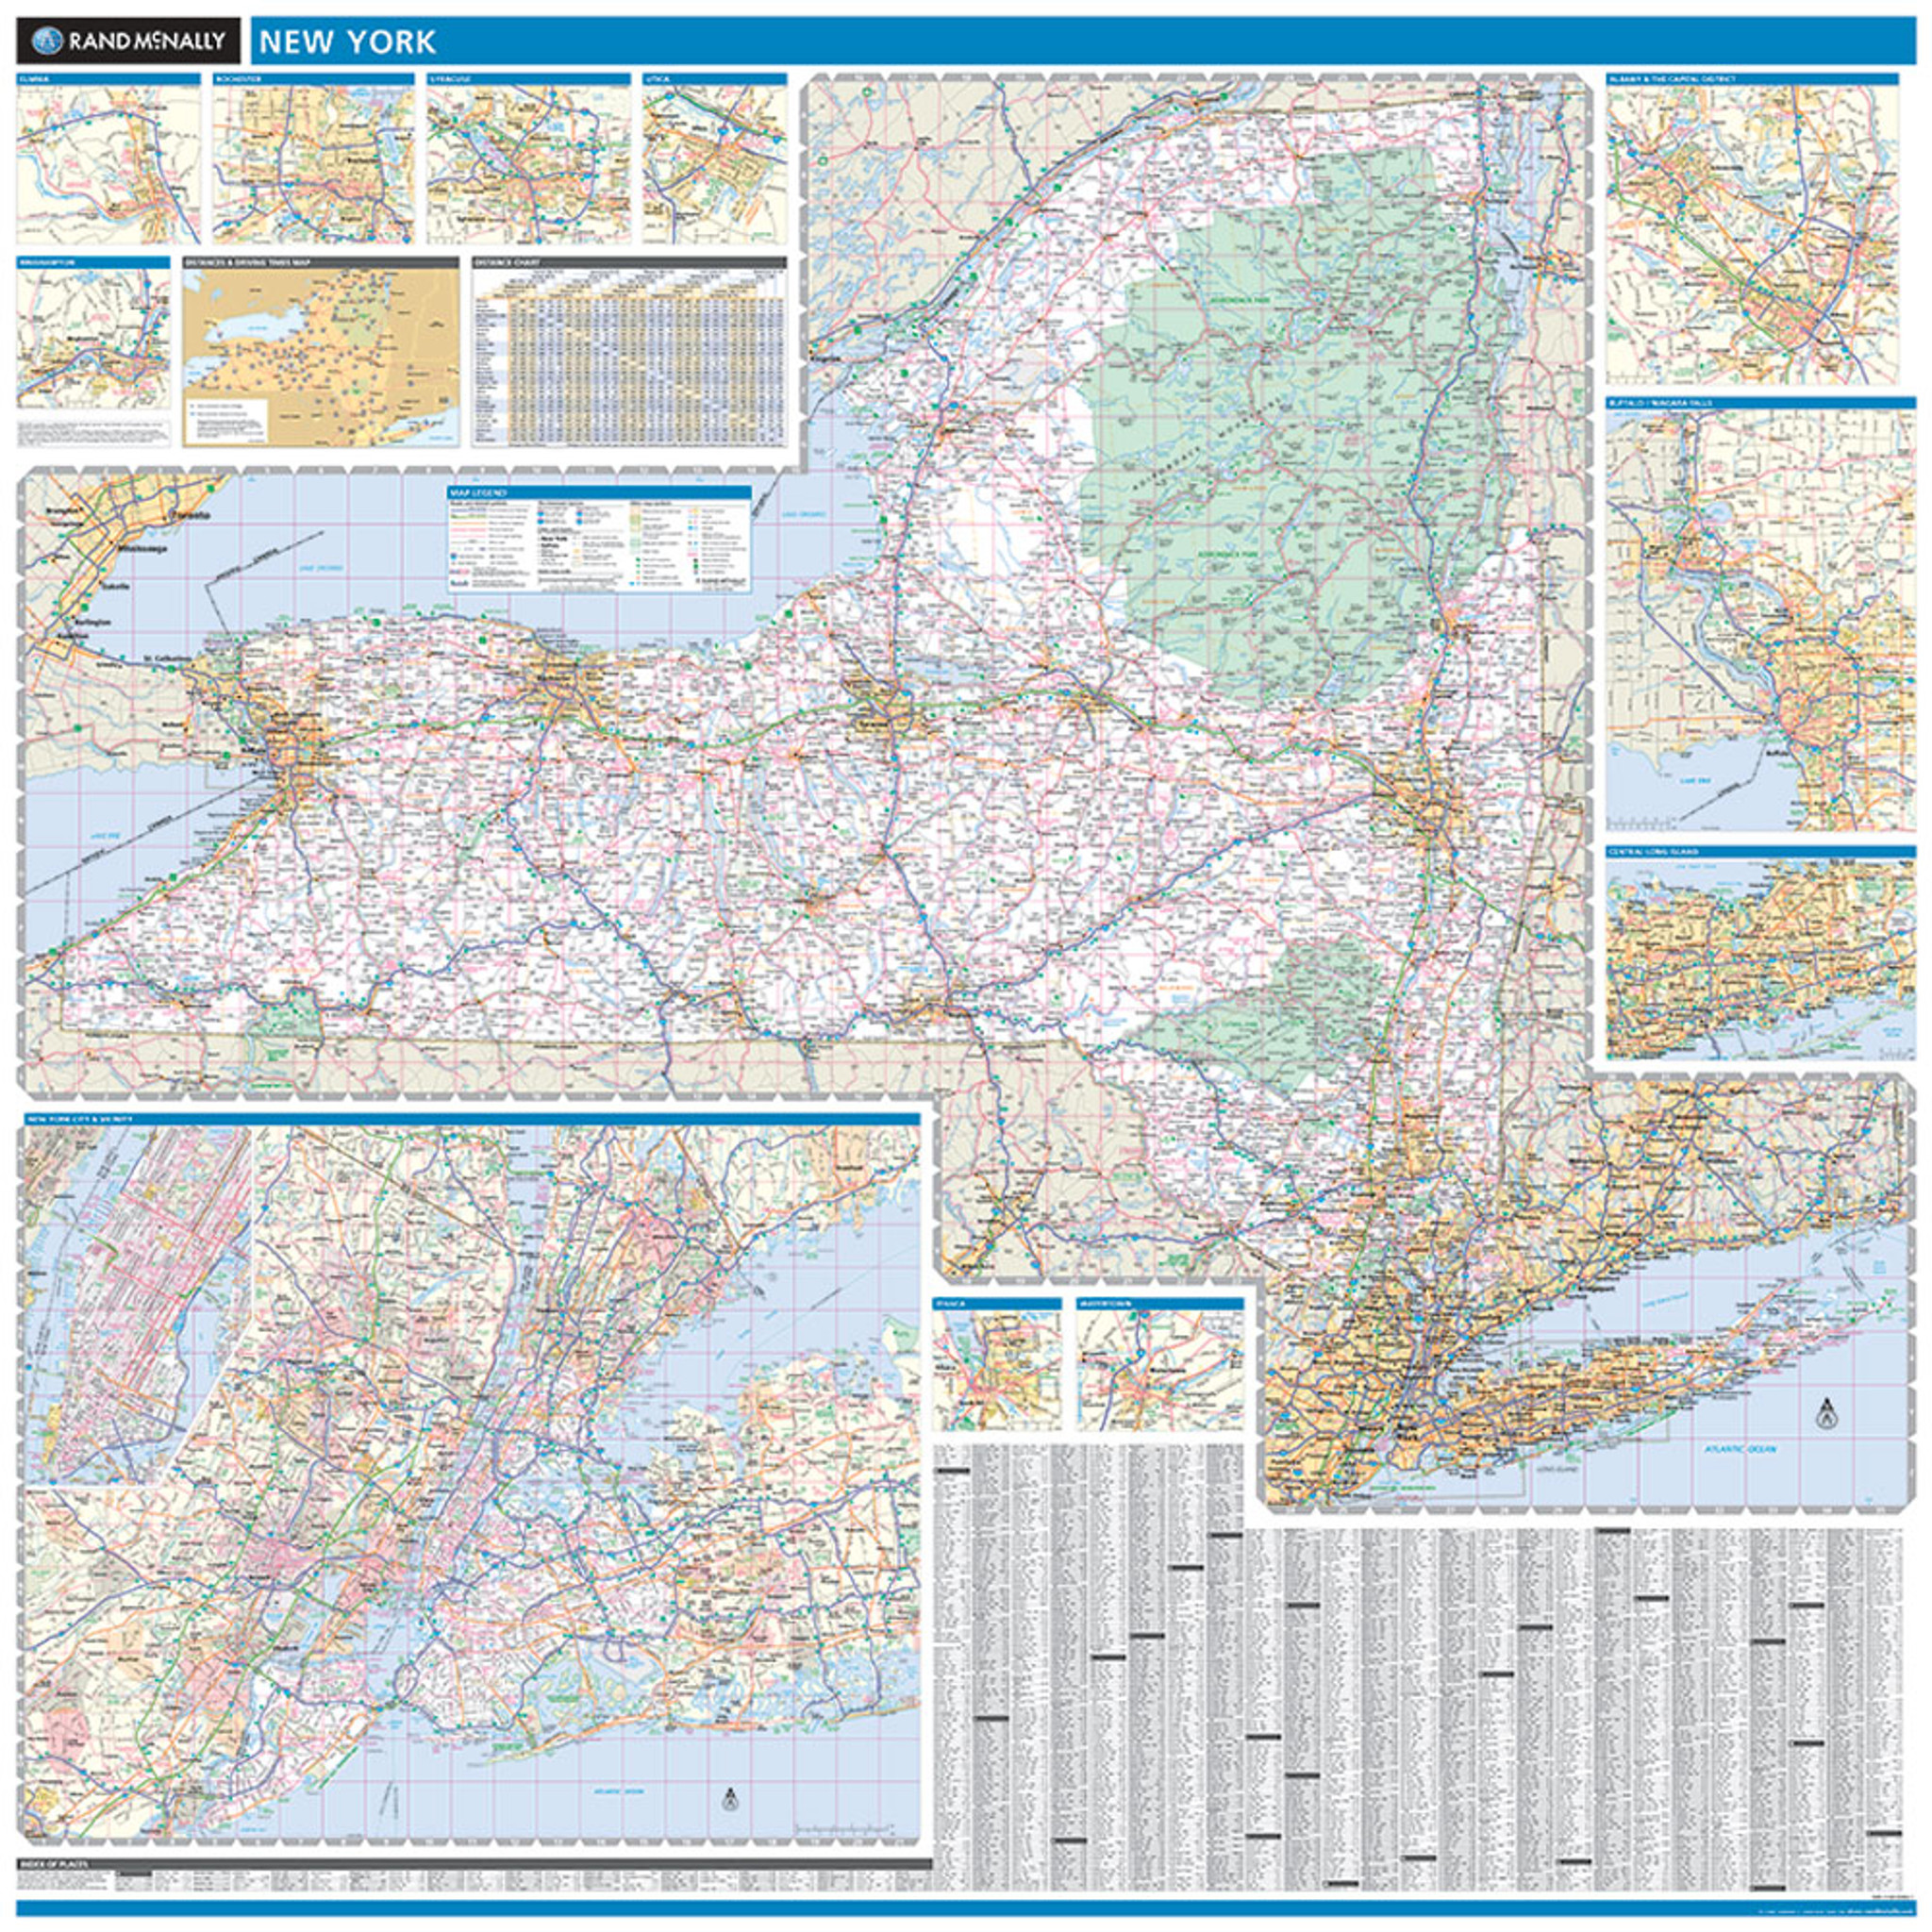 ProSeries Wall Map: New York State on newyork state map, gettysburg state map, northern wisconsin state map, sumter state map, florida state map, jefferson state map, lebanon state map, maine state map, williamsburg state map, allentown state map, nyc state map, north east region state map, bucks county state map, union state map, chadron state map, california state map, harrisburg state map, jersey state map, salisbury state map, richmond state map,